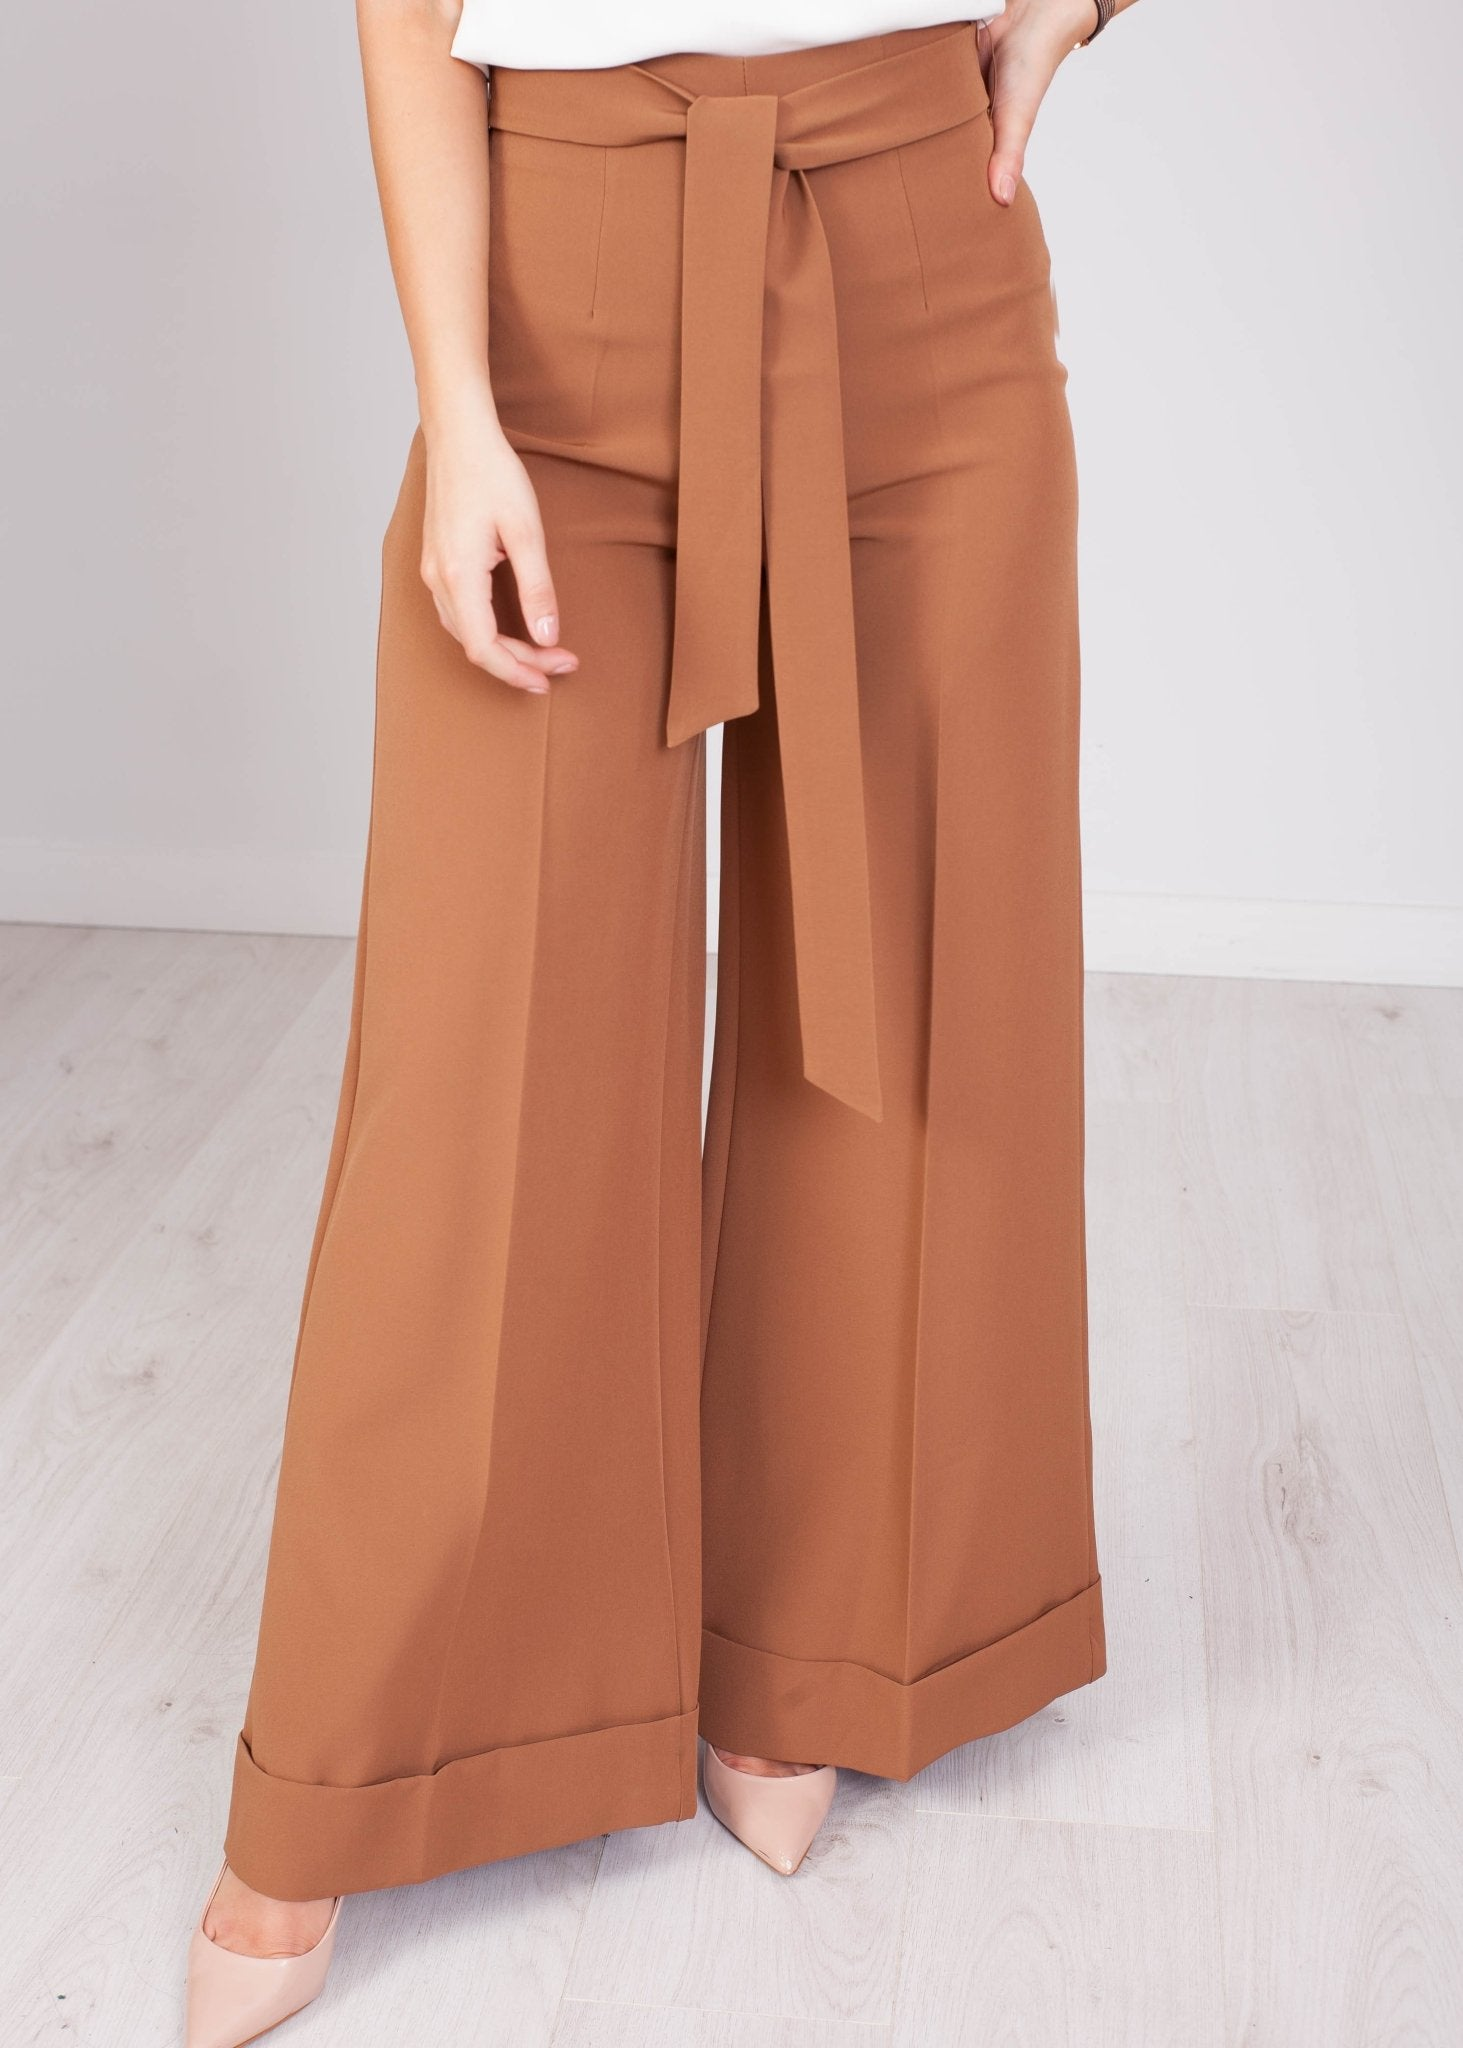 Heidi Wide Leg Trousers in Brown - The Walk in Wardrobe